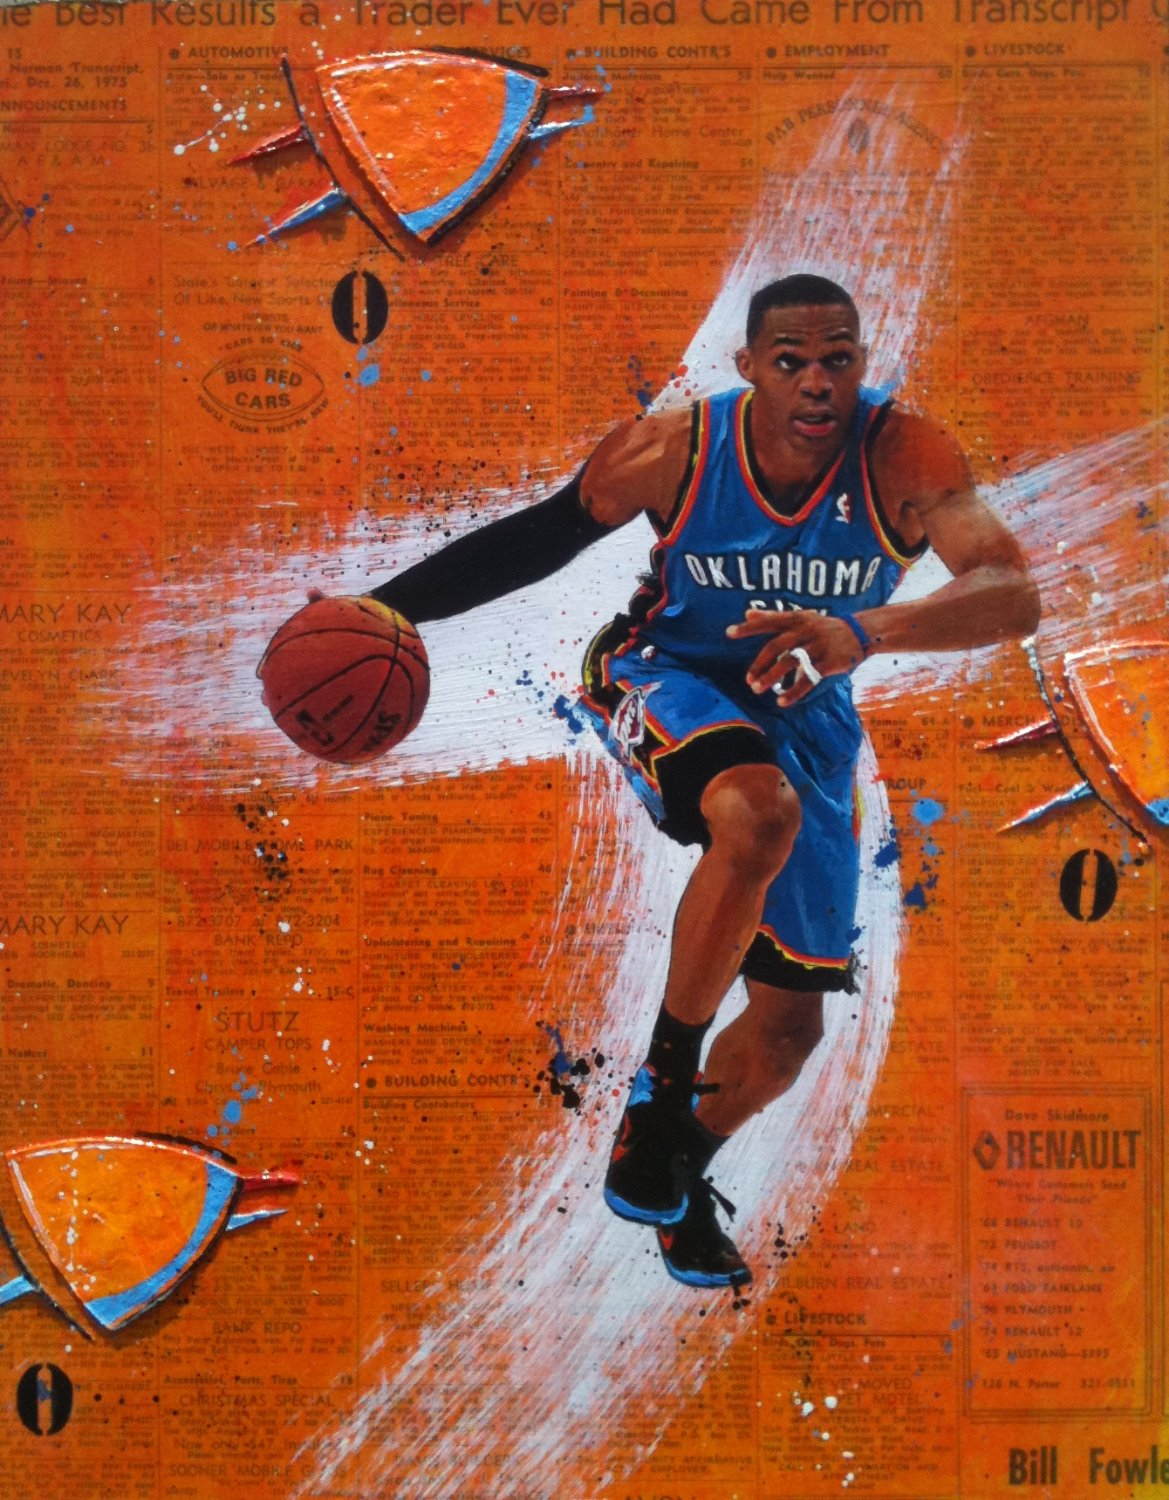 0 (Russell Westbrook)